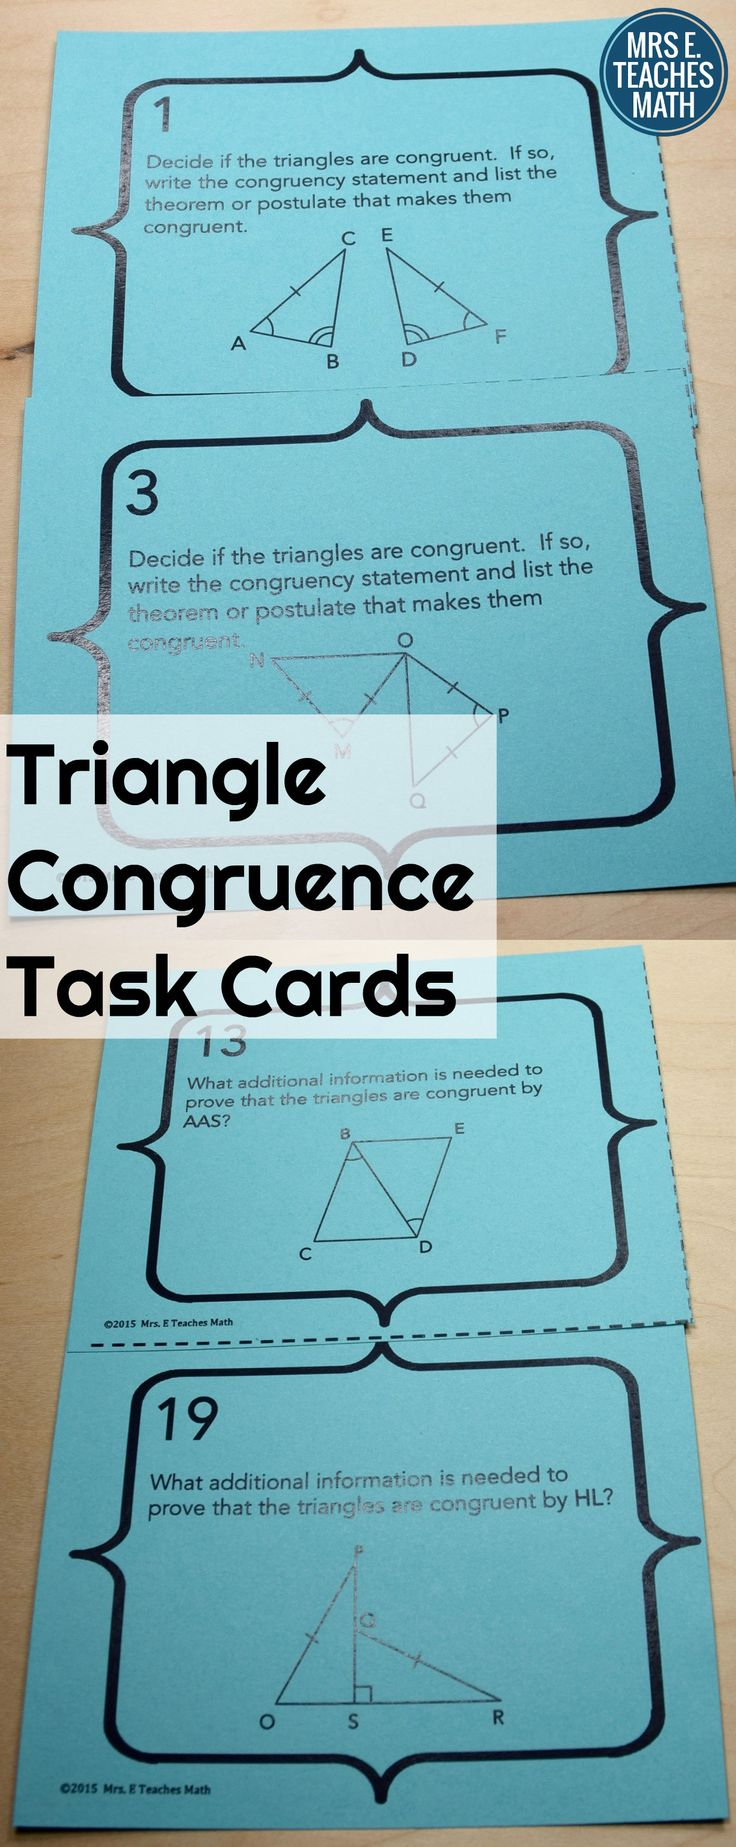 Triangle Congruence Task Cards - students practice congruent triangle rules with these task cards